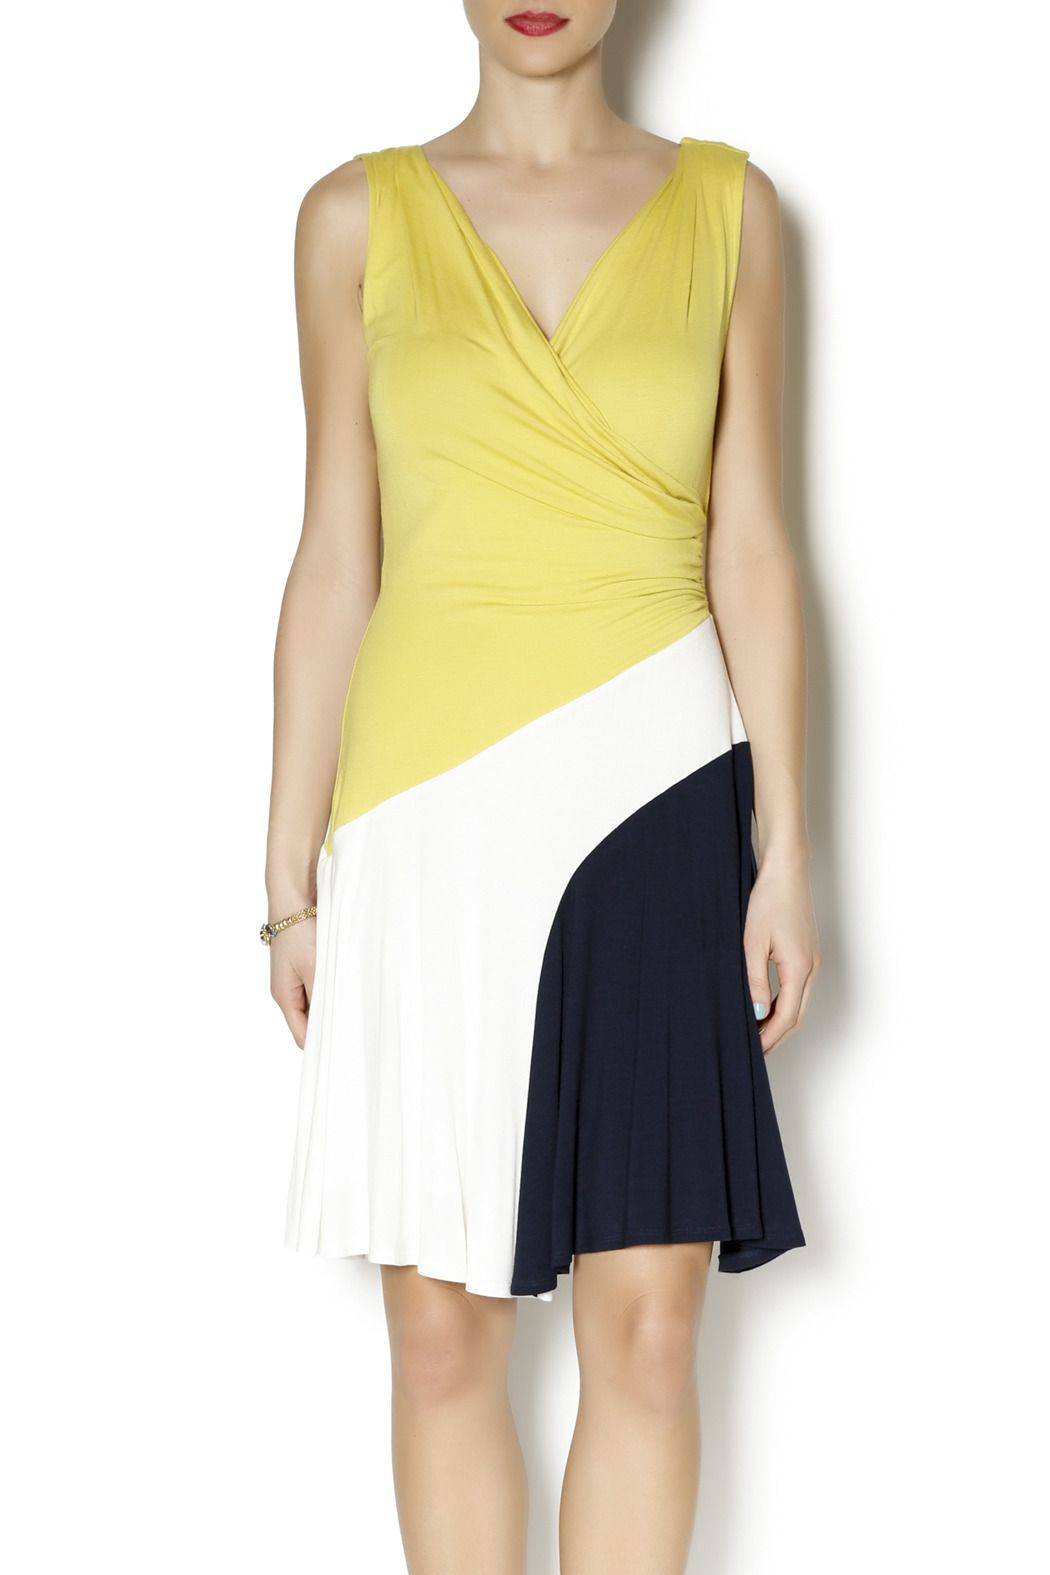 Yellow dress knee length  Colorblock Dress  Colorblock dress Lily clothing and Cross body